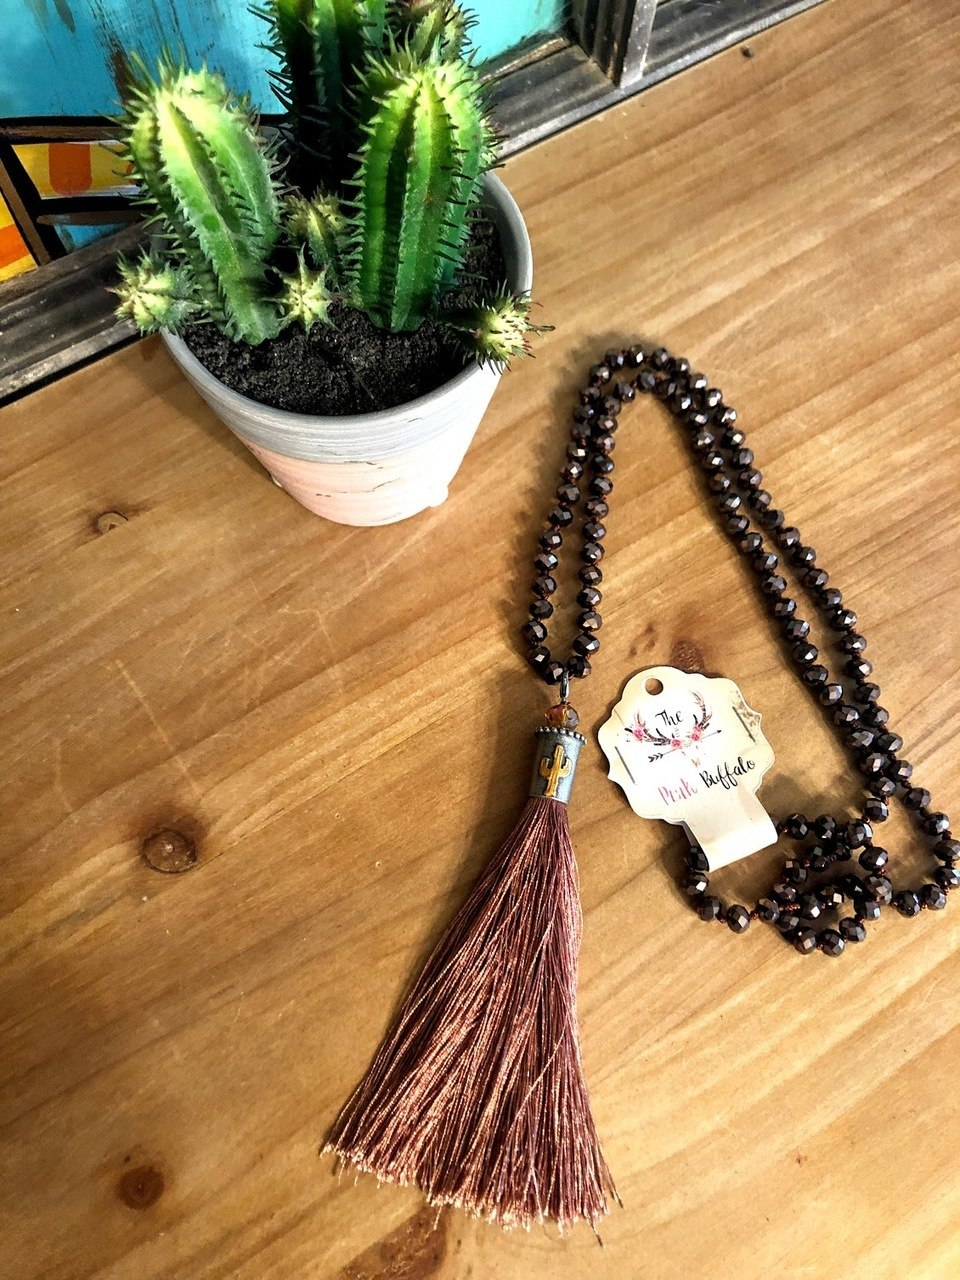 Chocolate Cactus Necklace - The Pink Buffalo,LLC